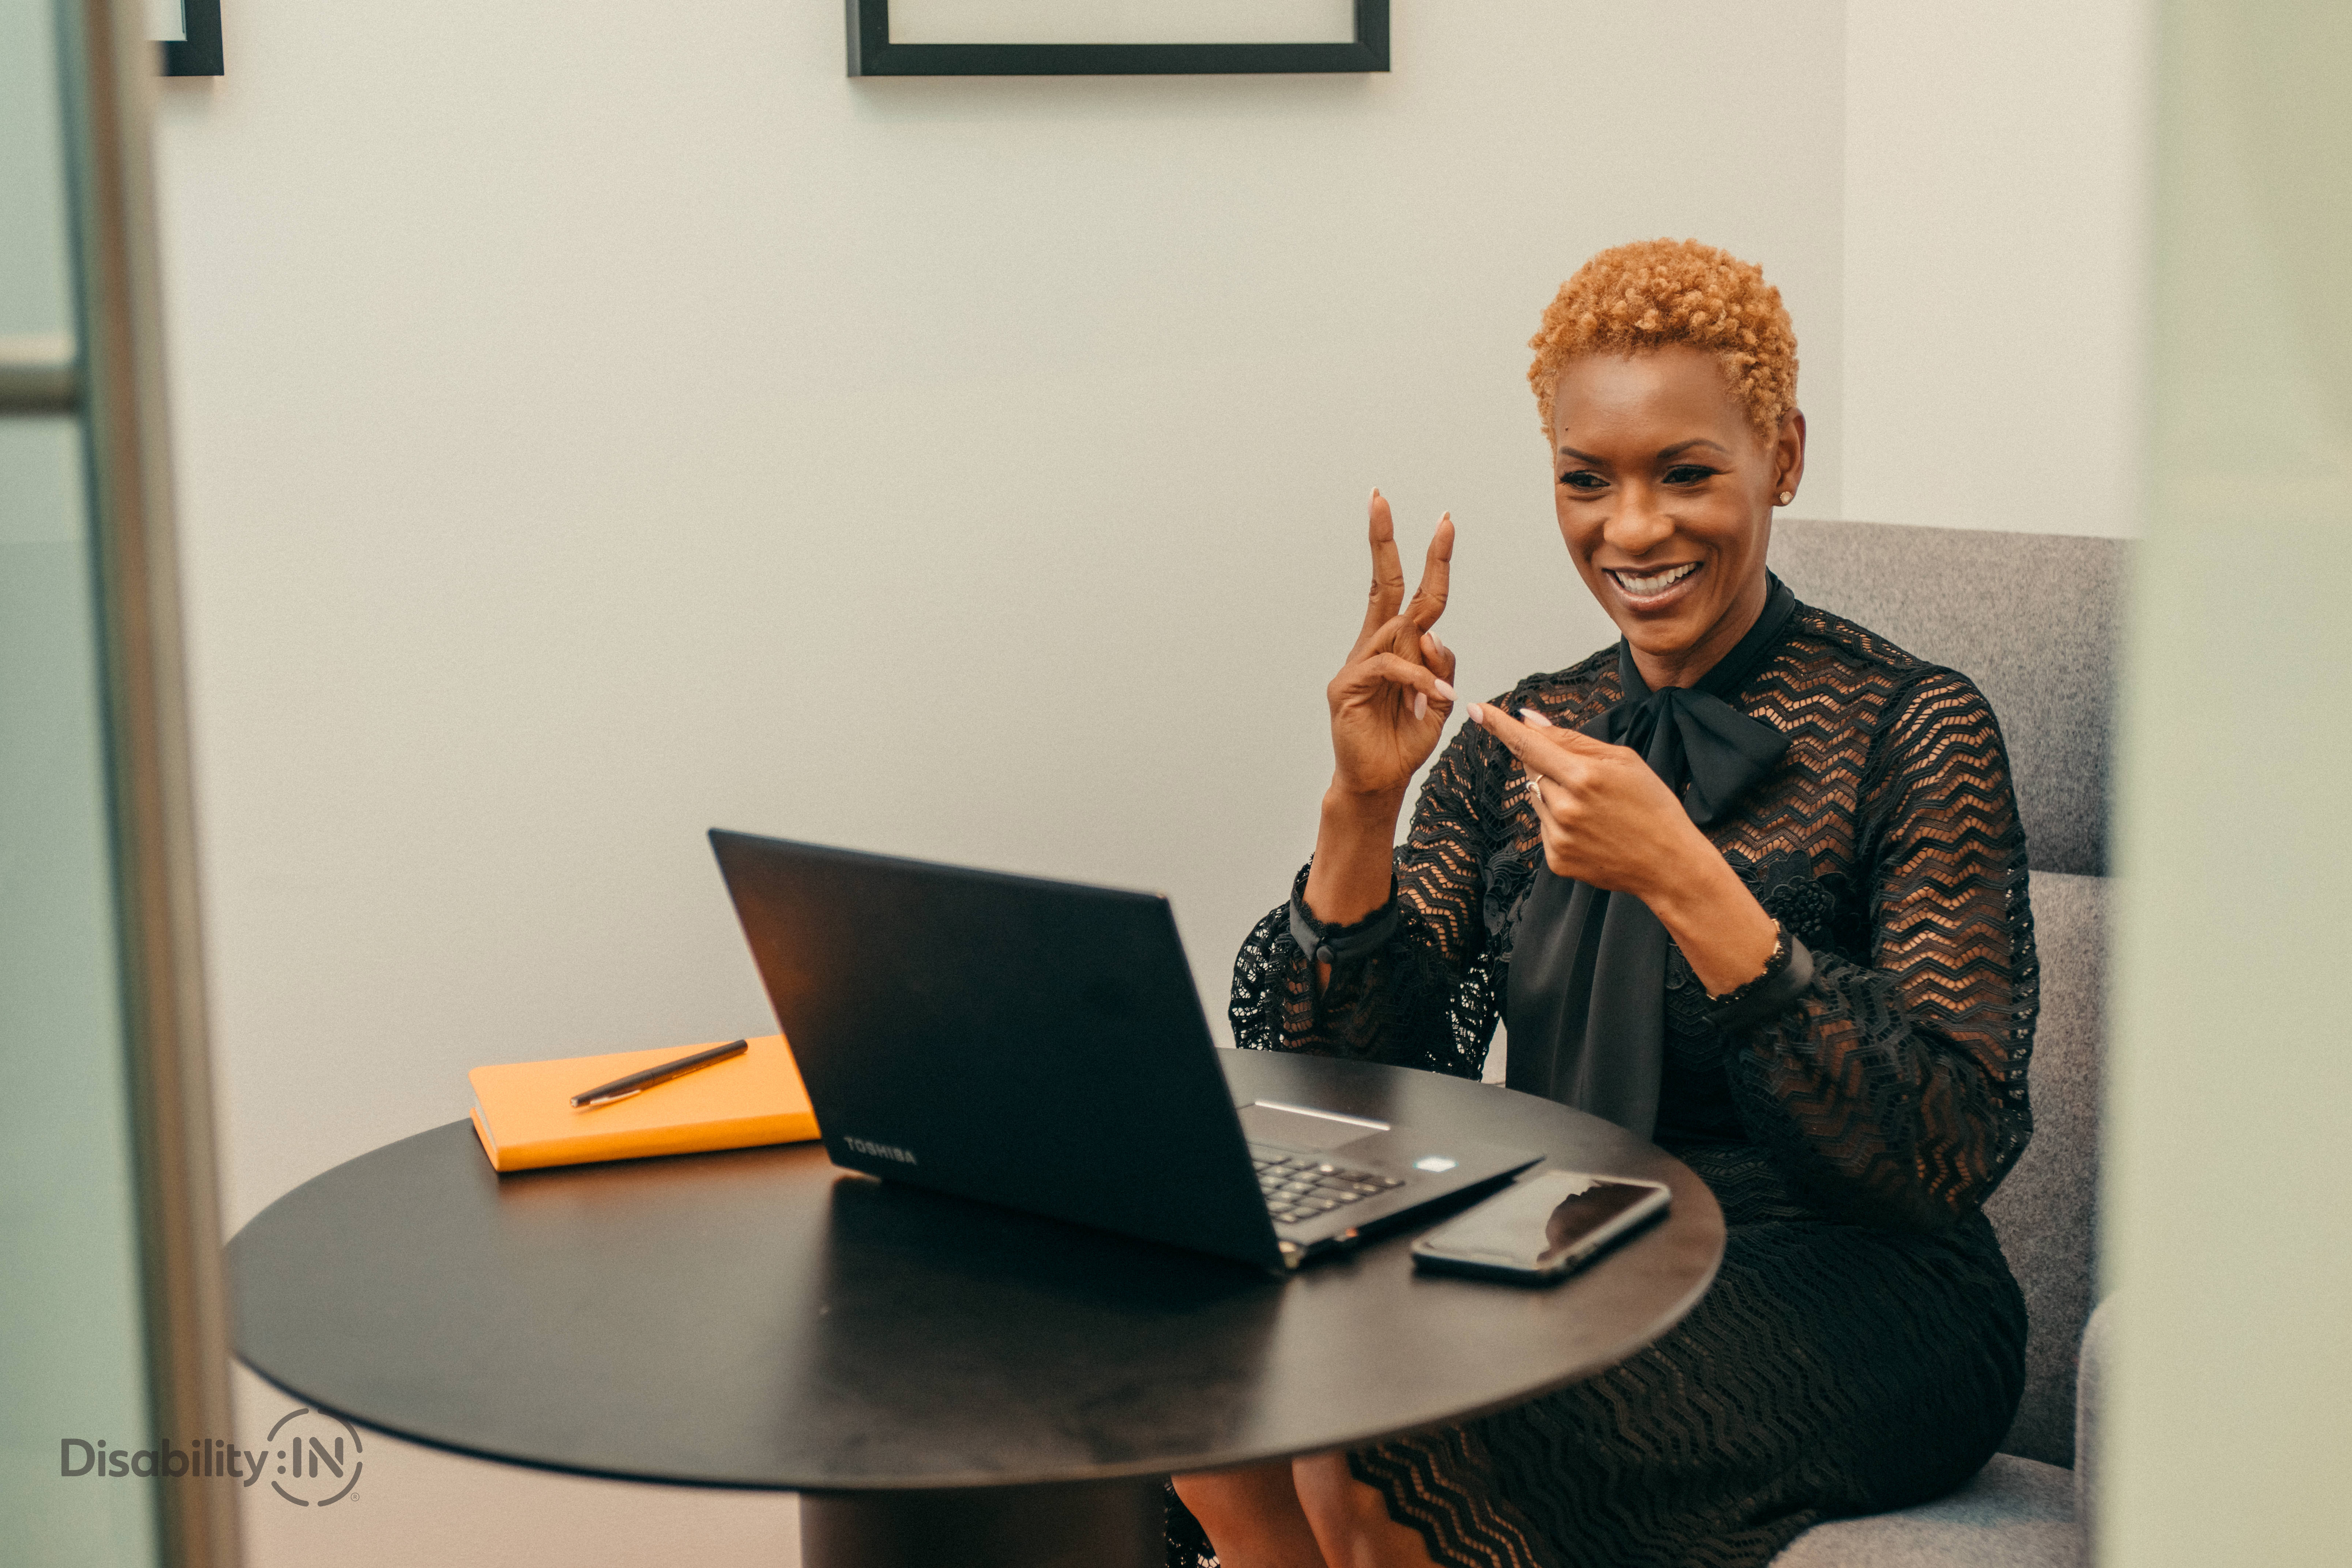 Woman uses sign language in a video teleconference